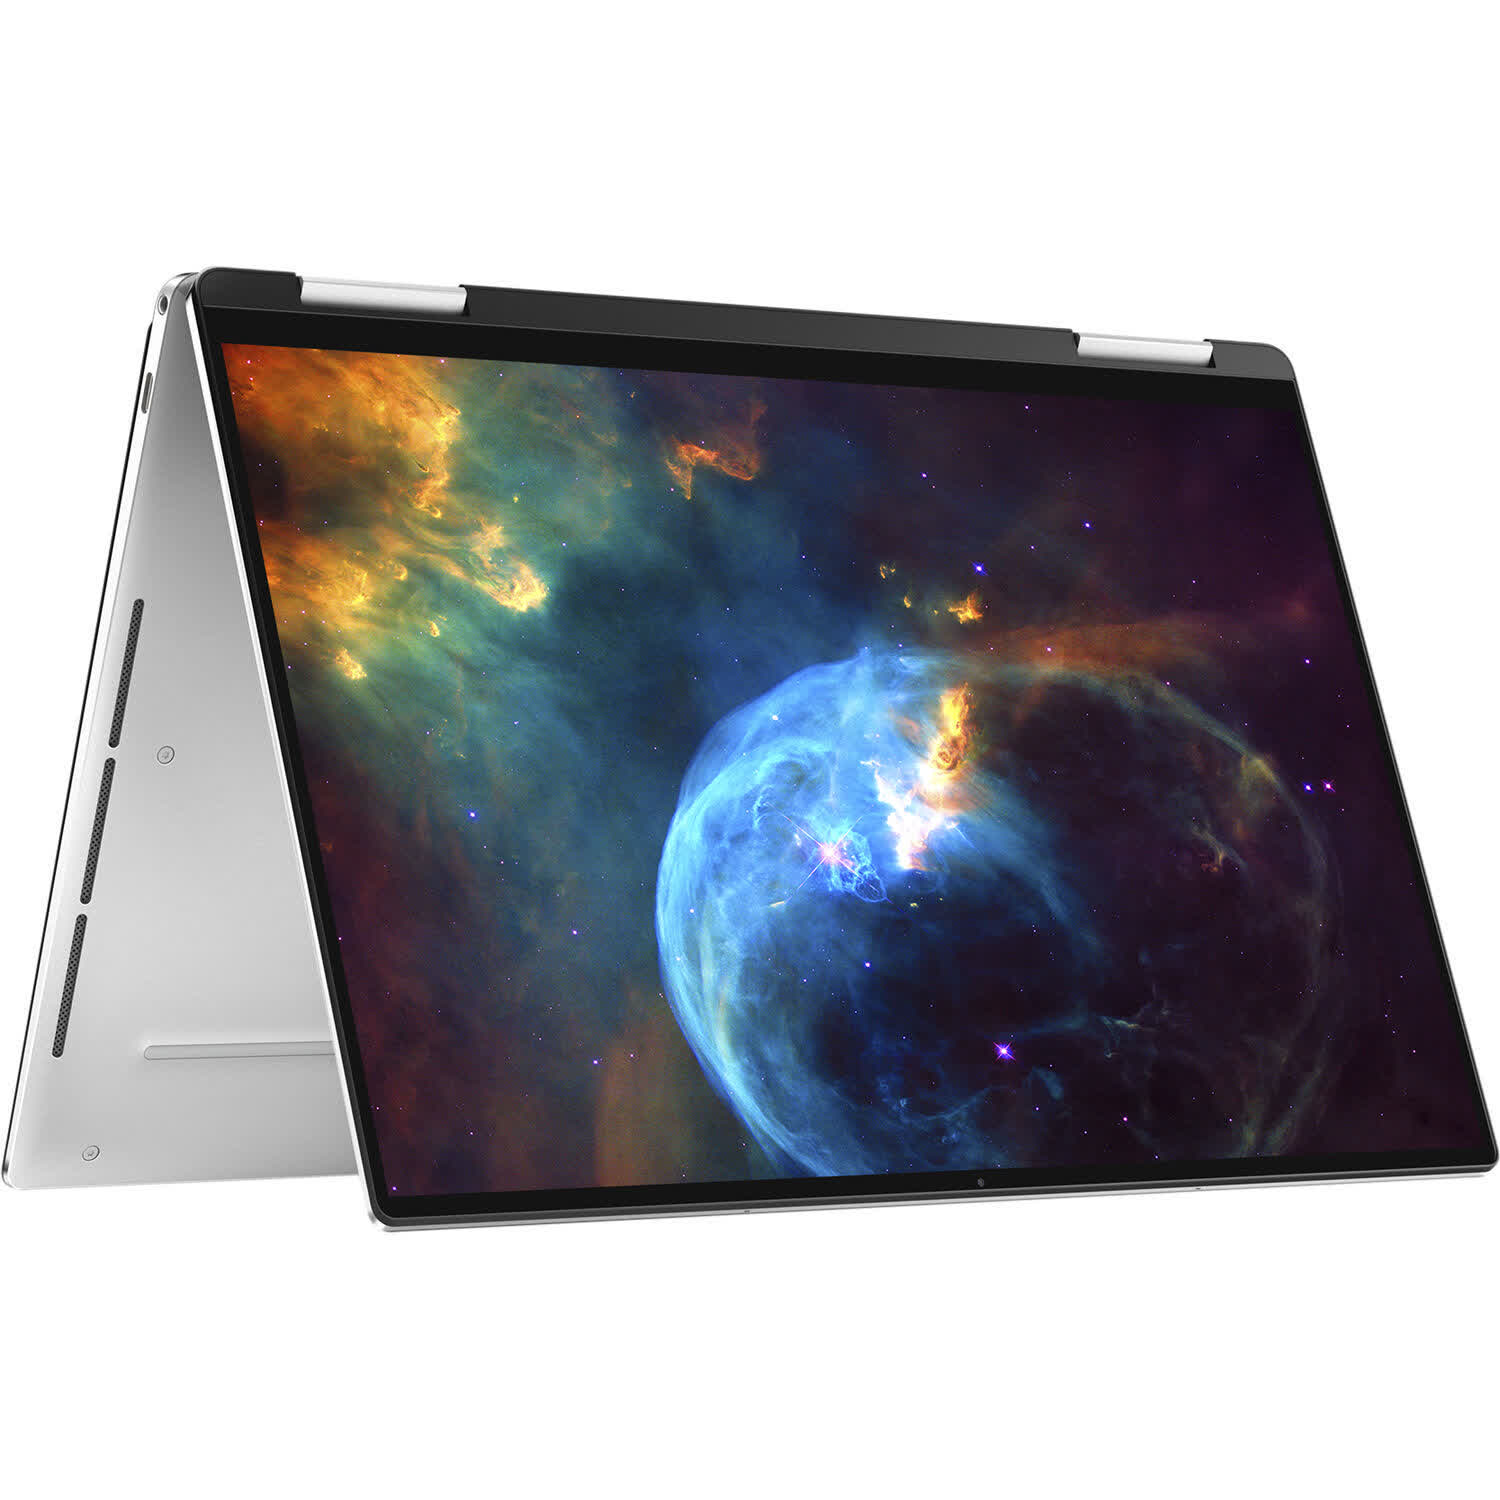 Dell XPS 13 2-in-1 (9310) - Late 2020